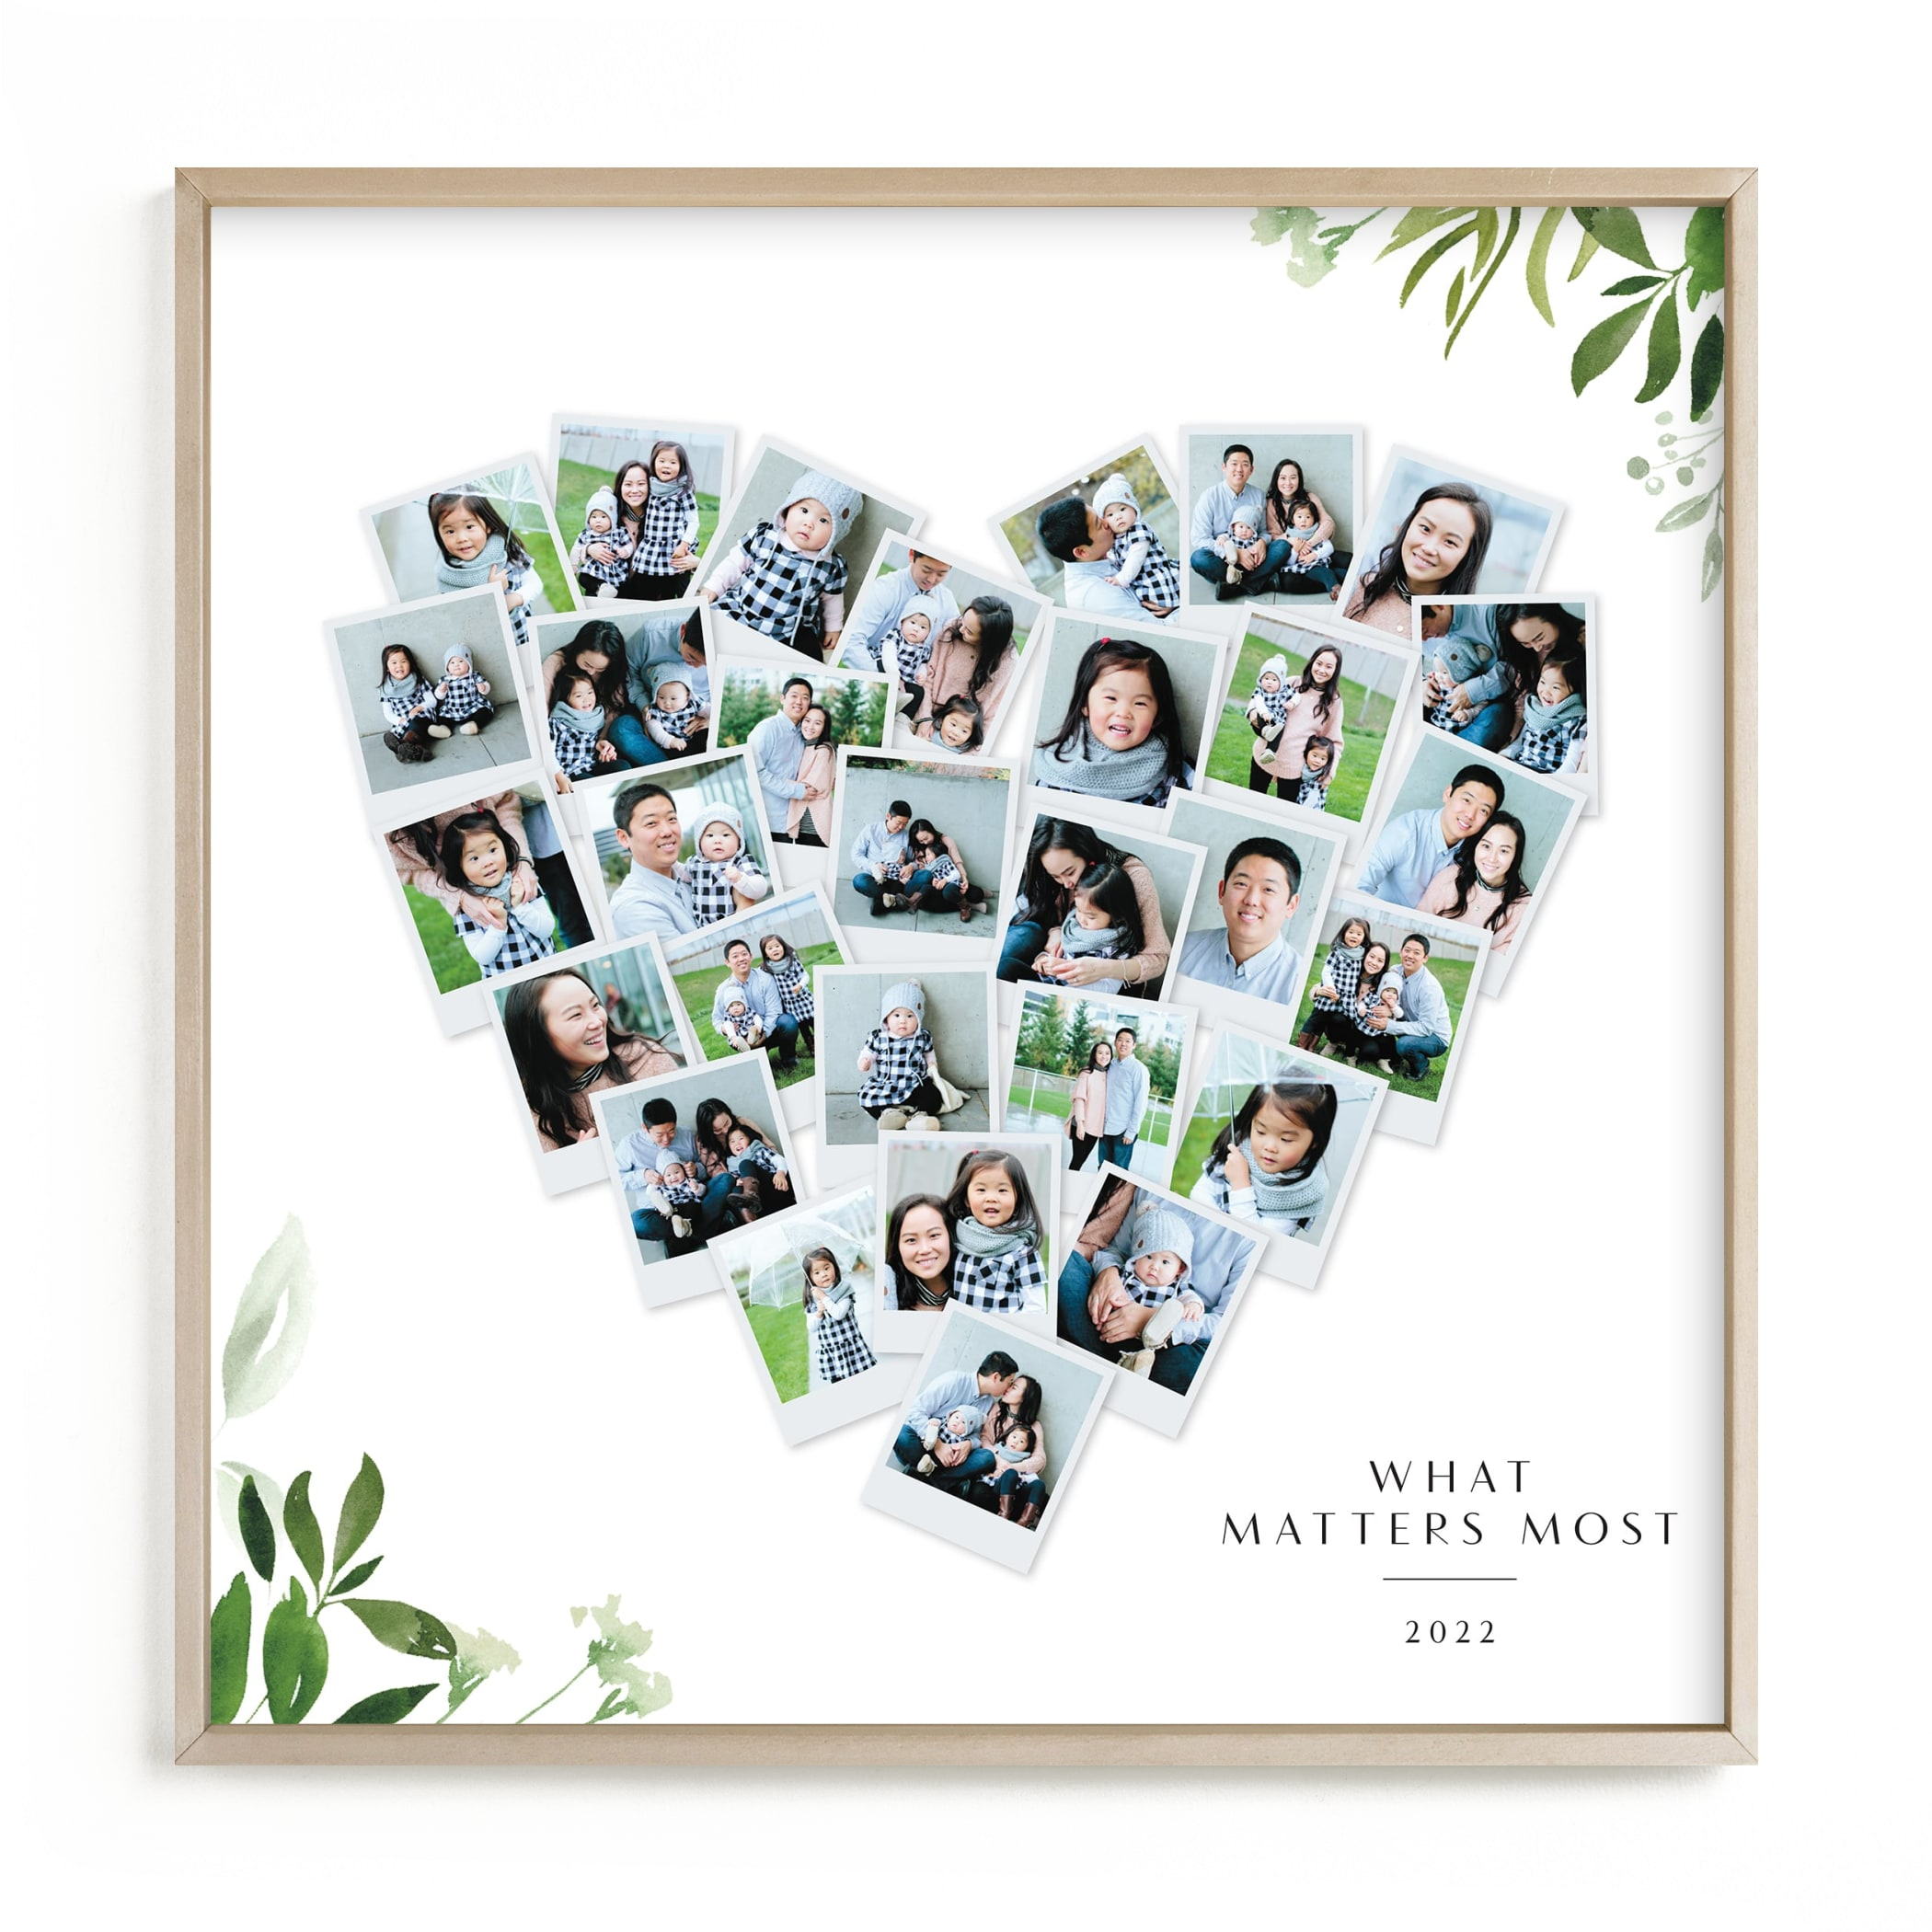 Floral Heart Snapshot Mix® Custom Photo Art Print